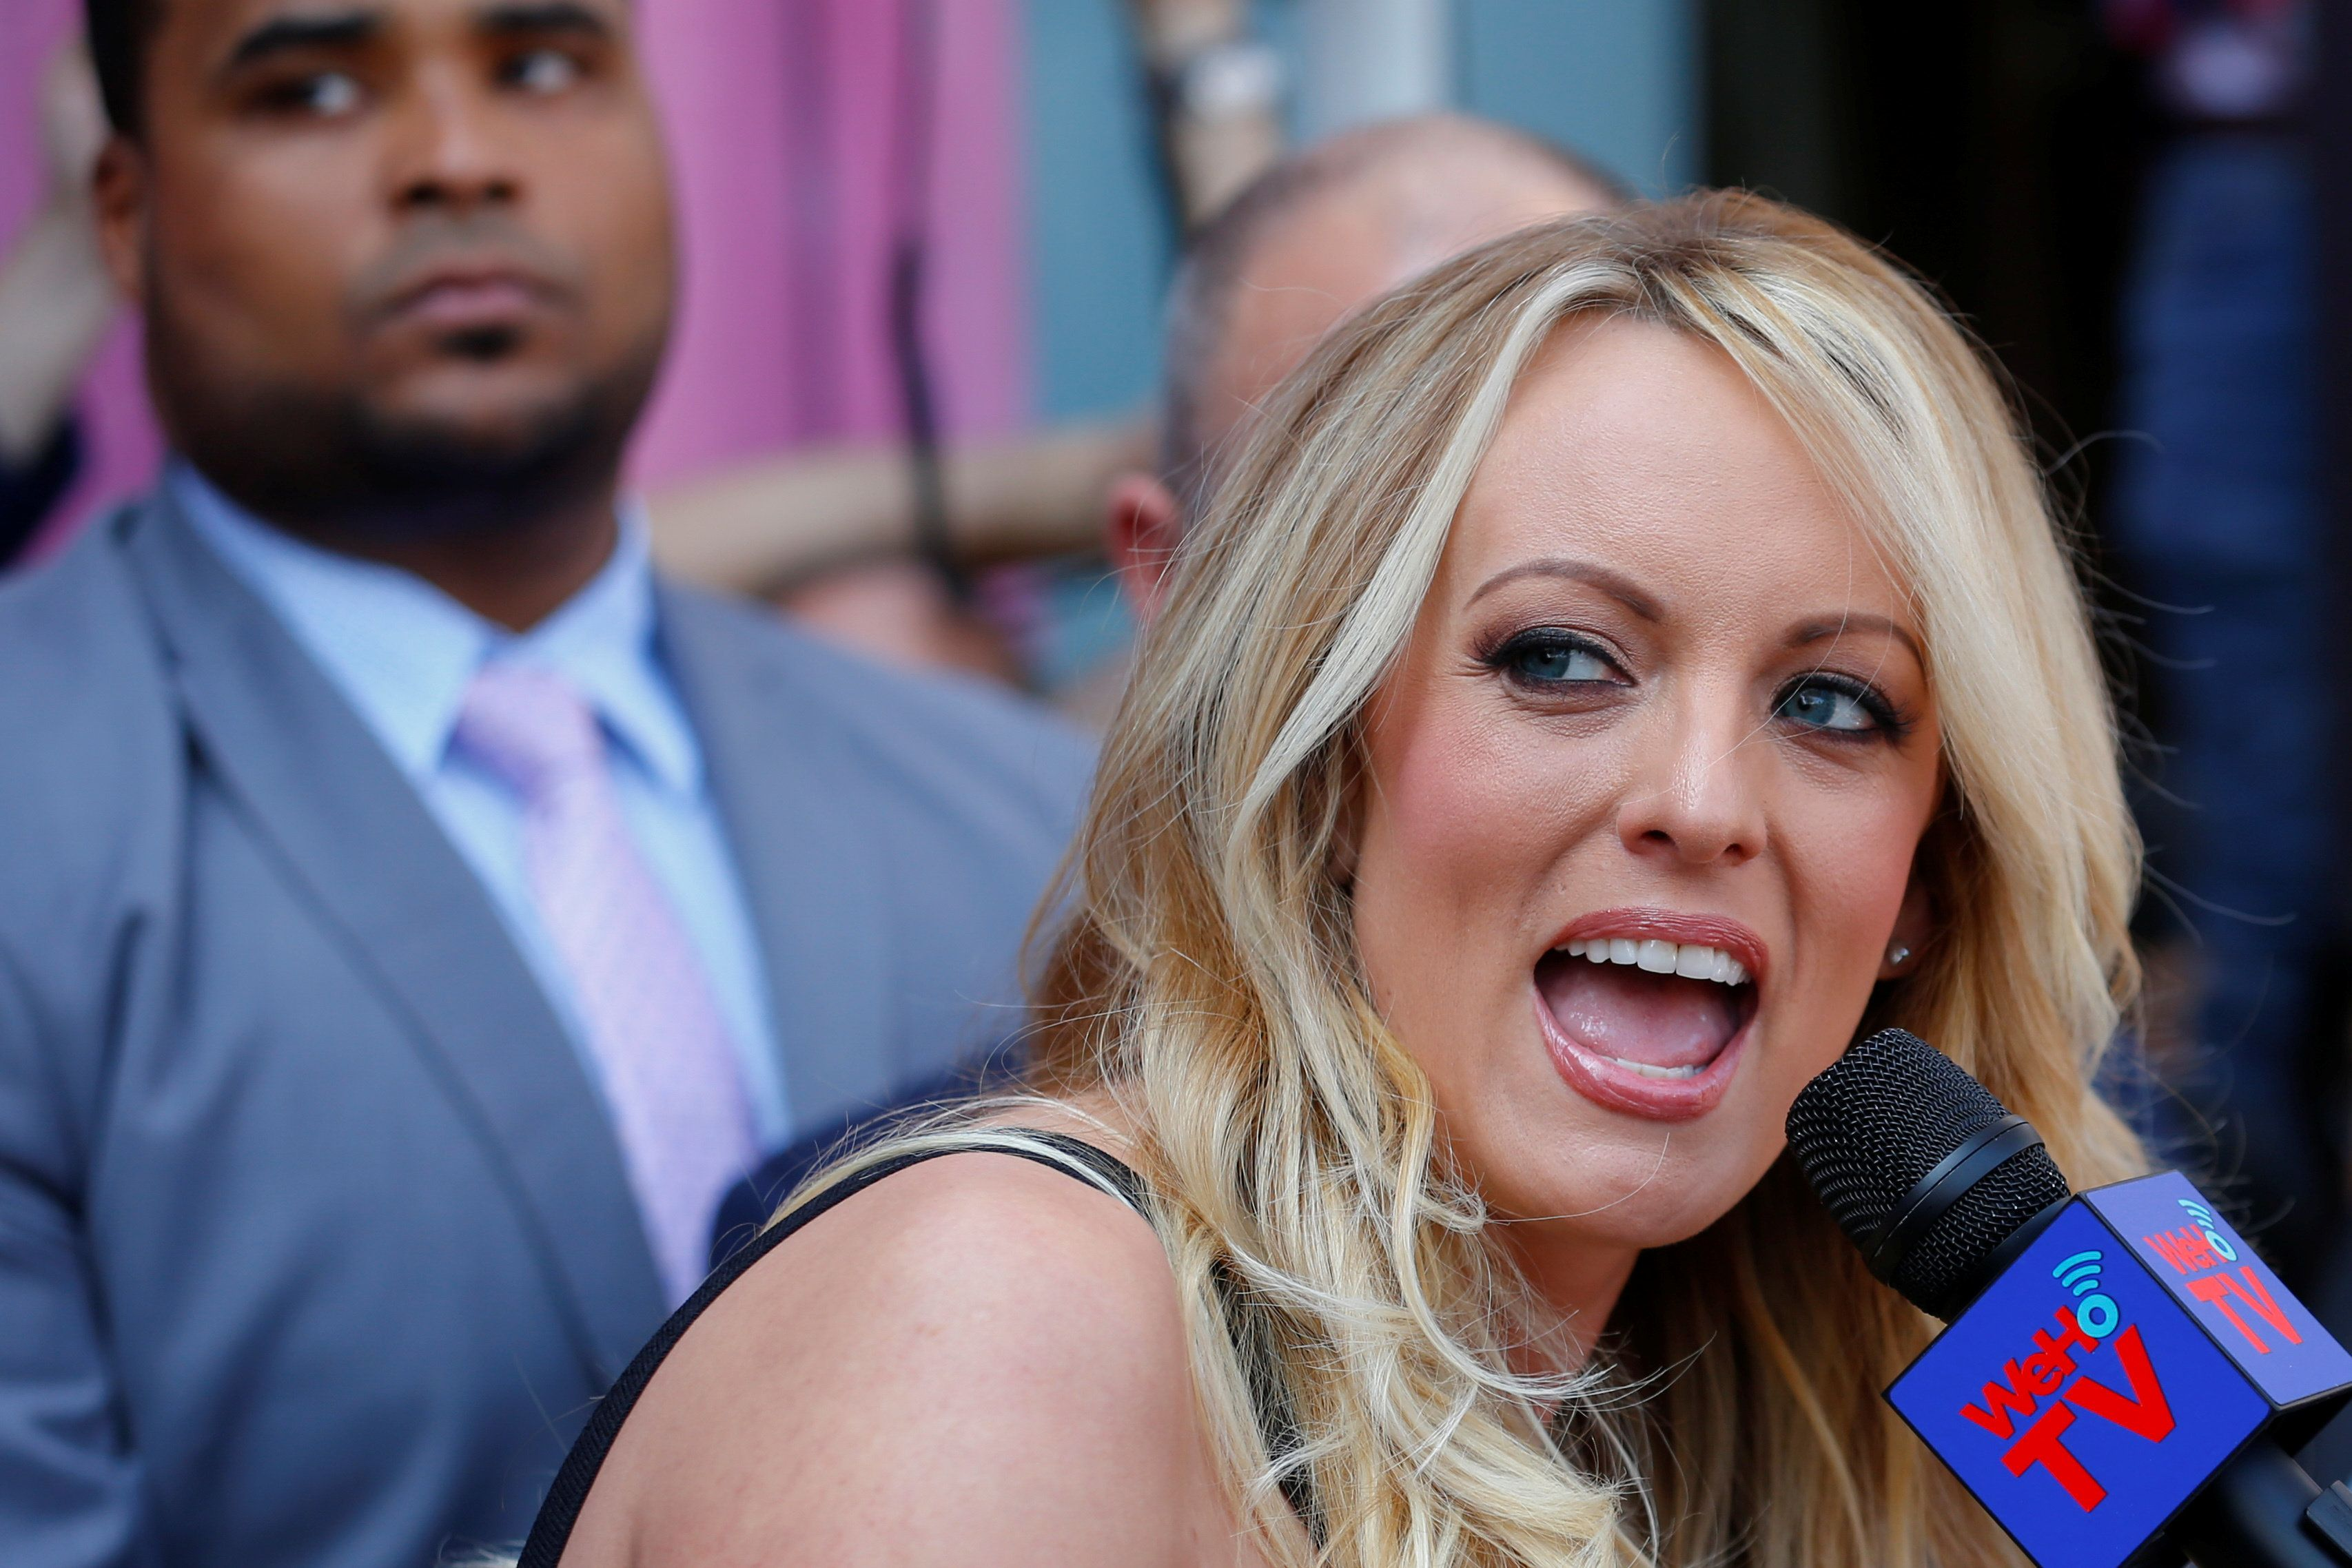 Stormy Daniels, the porn star currently in legal battles with U.S. President Donald Trump, speaks during a ceremony in her honor in West Hollywood, California, U.S., May 23, 2018.  REUTERS/Mike Blake